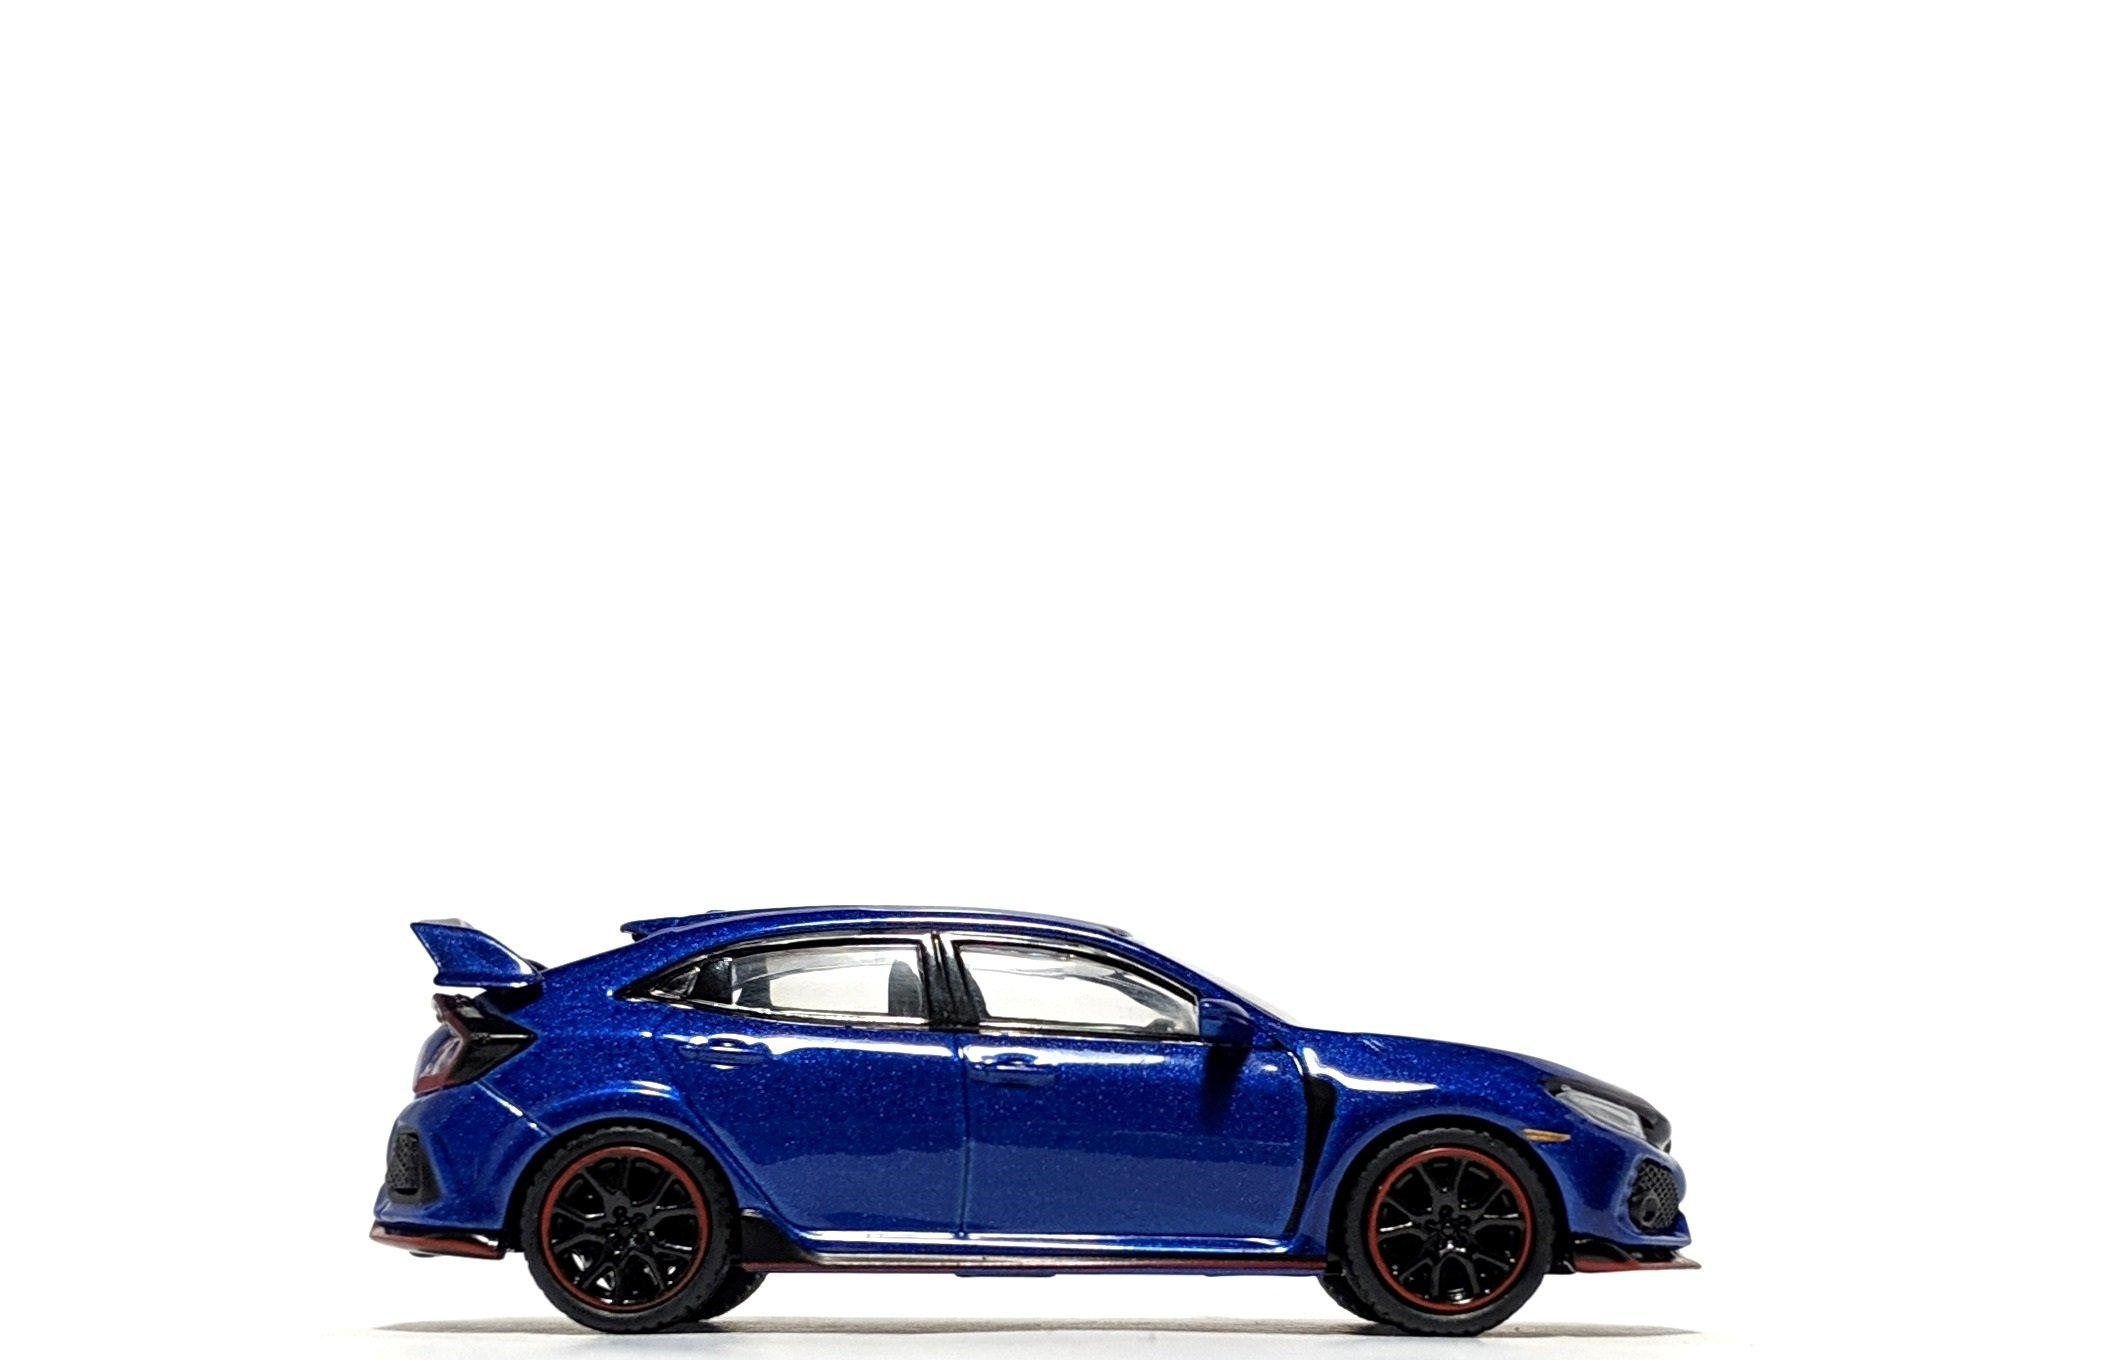 Honda Civic Type R in Aegean Blue, by Mini GT